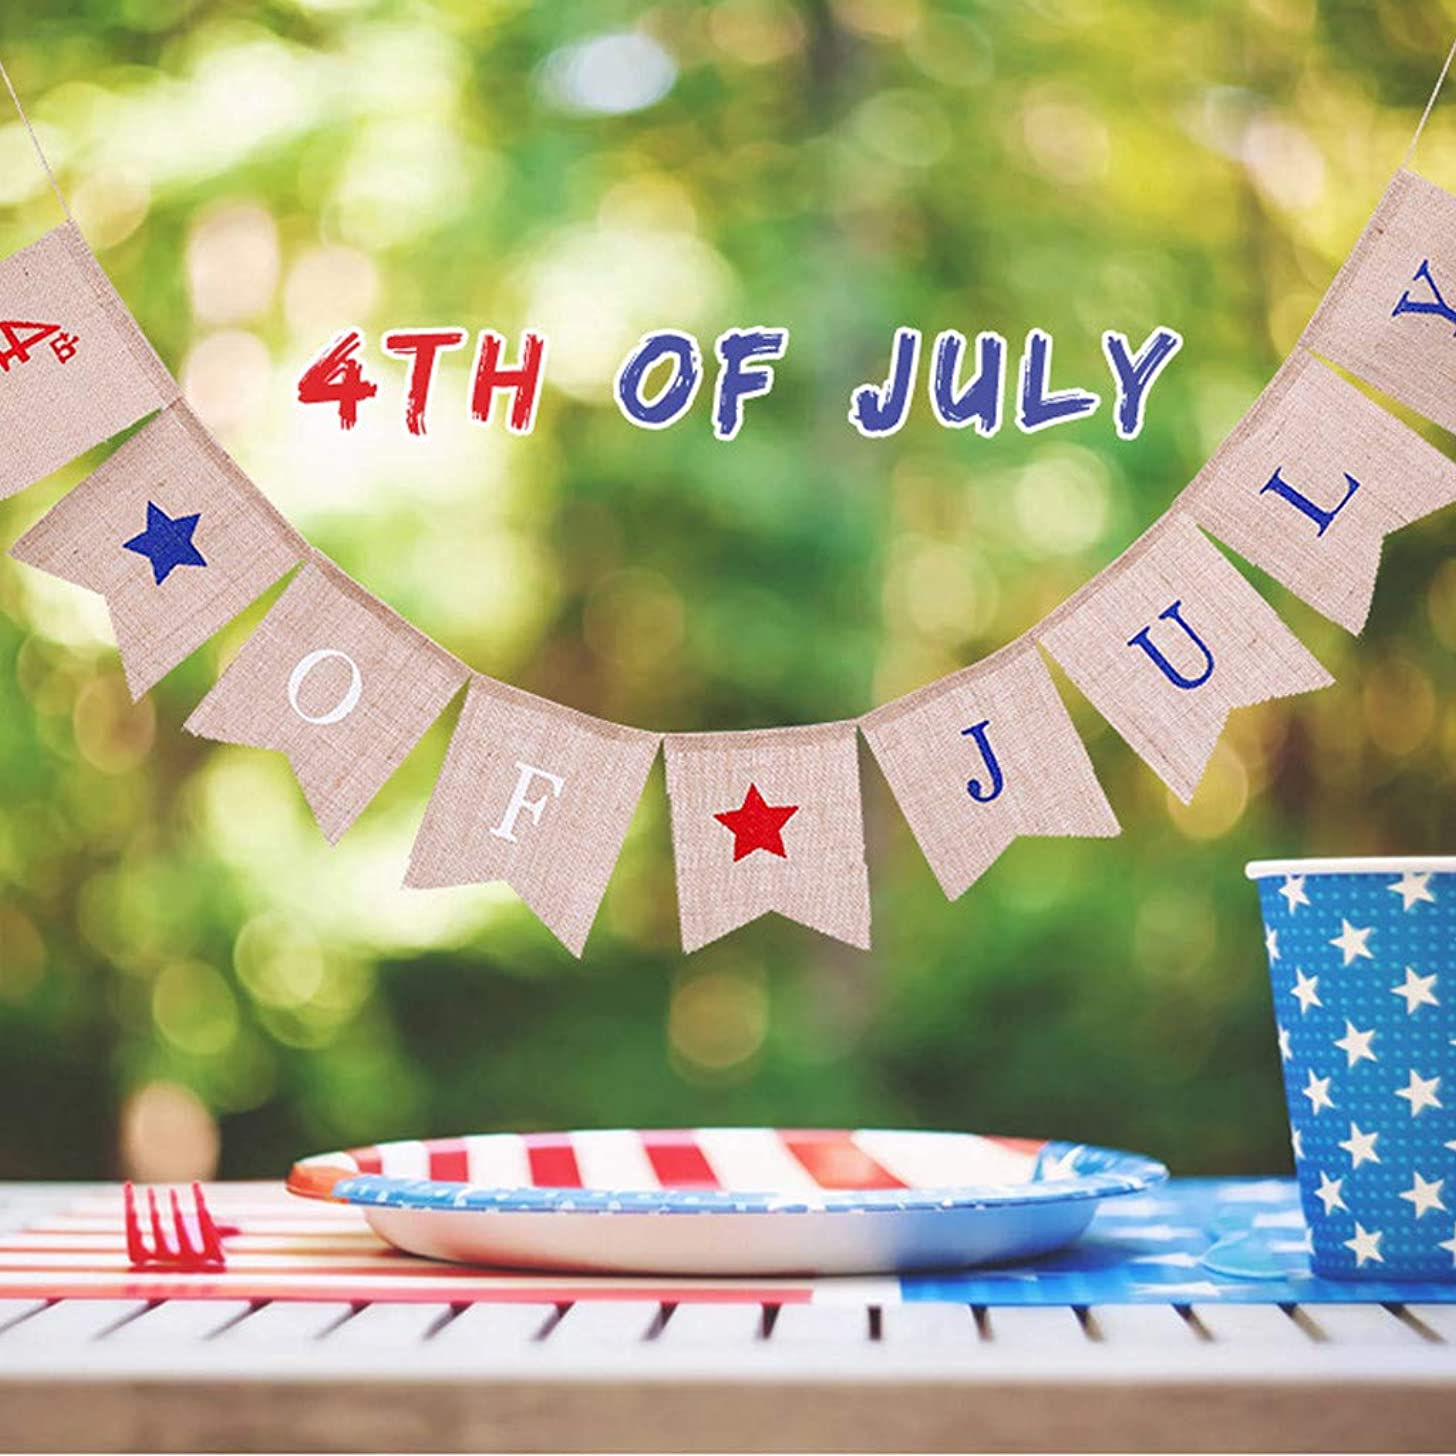 4thof July Banner,Fheaven USA Independence Day Banner Festival Layout Outdoor Interior Ceiling Decoration